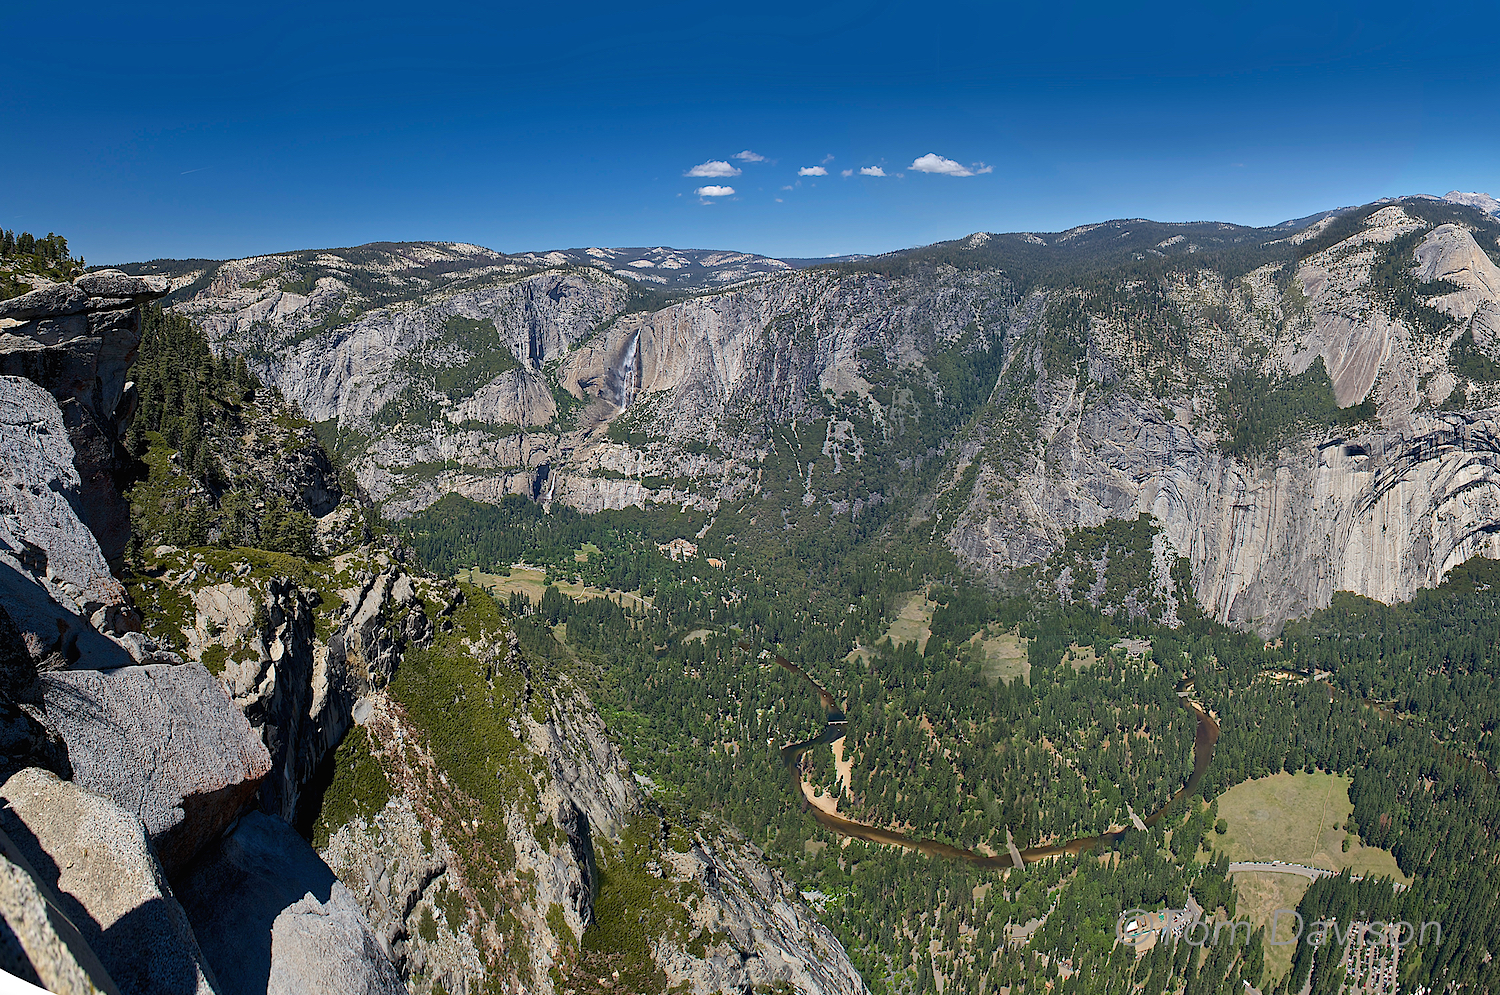 A sixshot stitched pano taken at Glacier Point. If you look carefully you can spot both Upper and Lower Yosemite Falls and the winding Merced River.